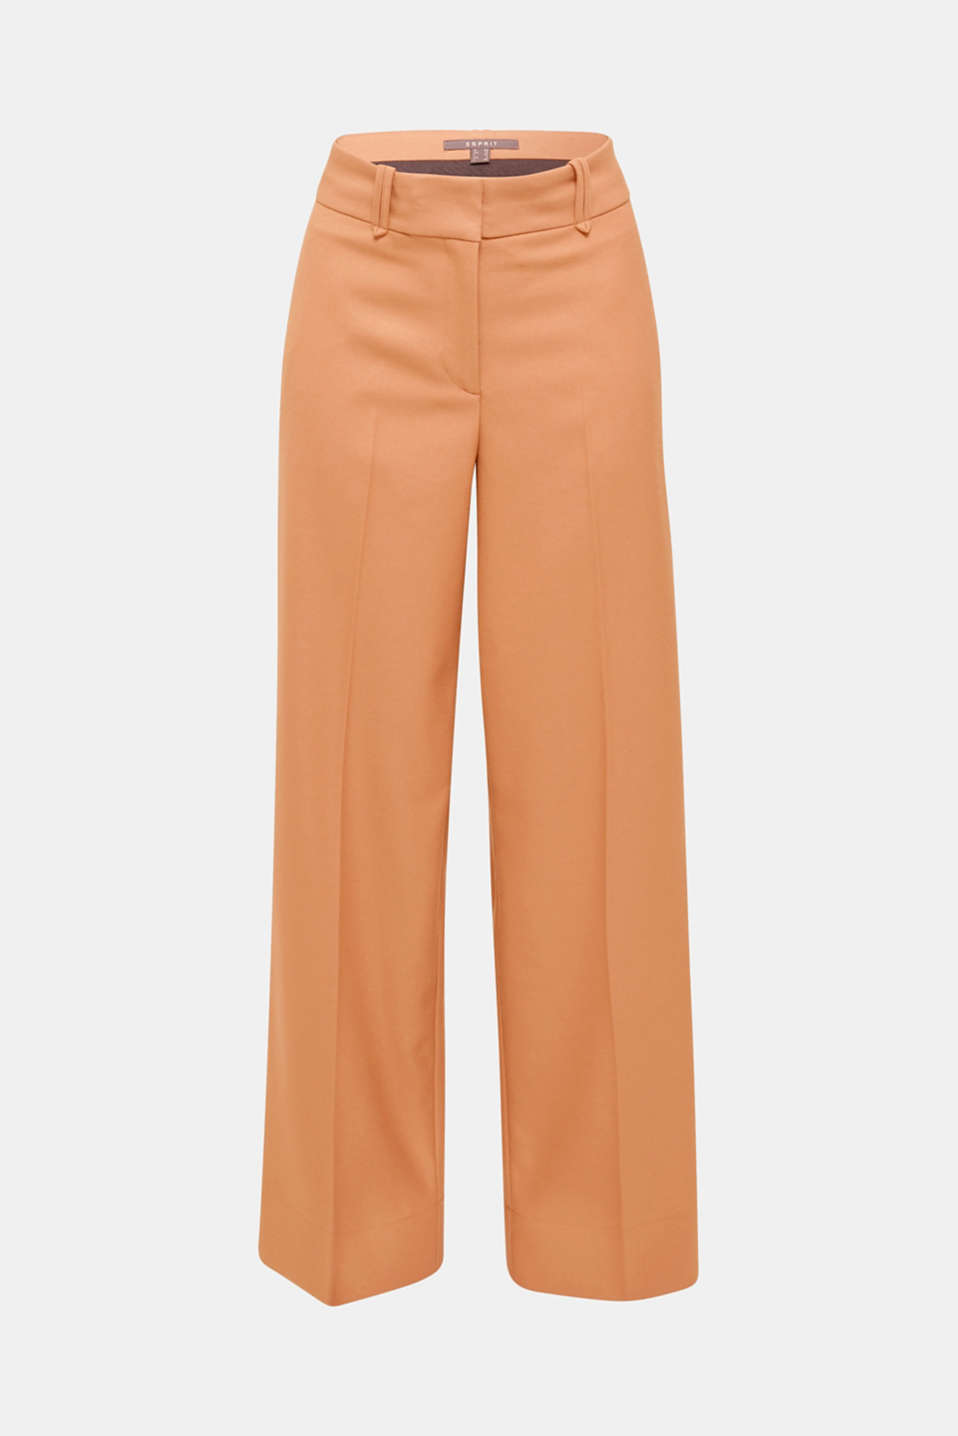 High-waist stretch trousers with a wide leg, CAMEL, detail image number 6